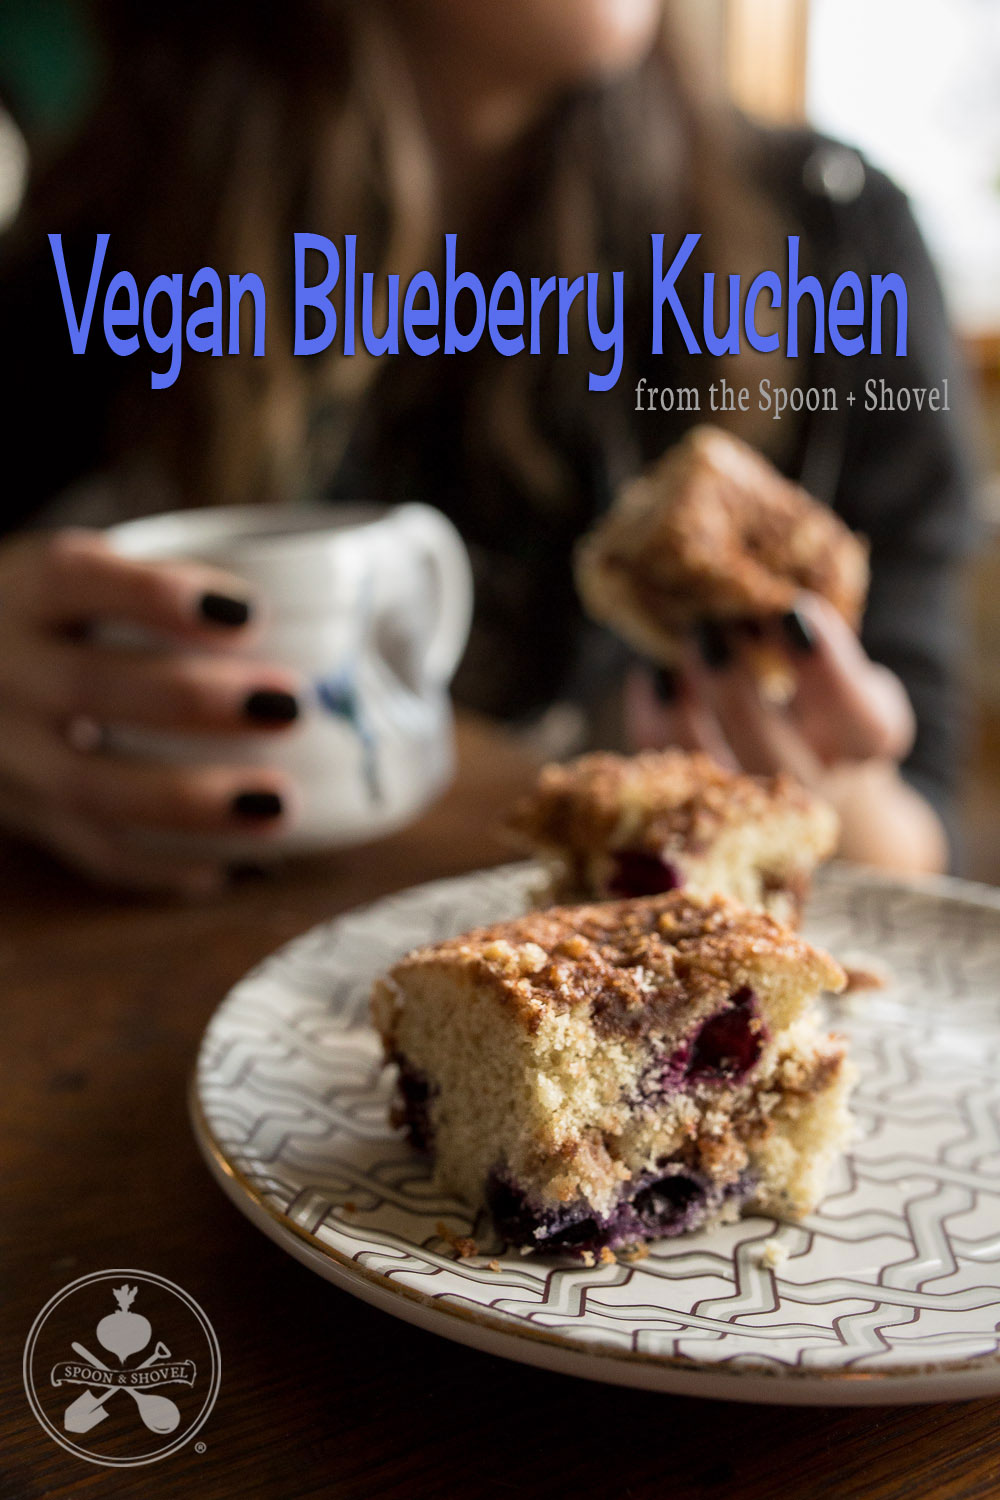 Vegan blueberry kuchen from The Spoon + Shovel